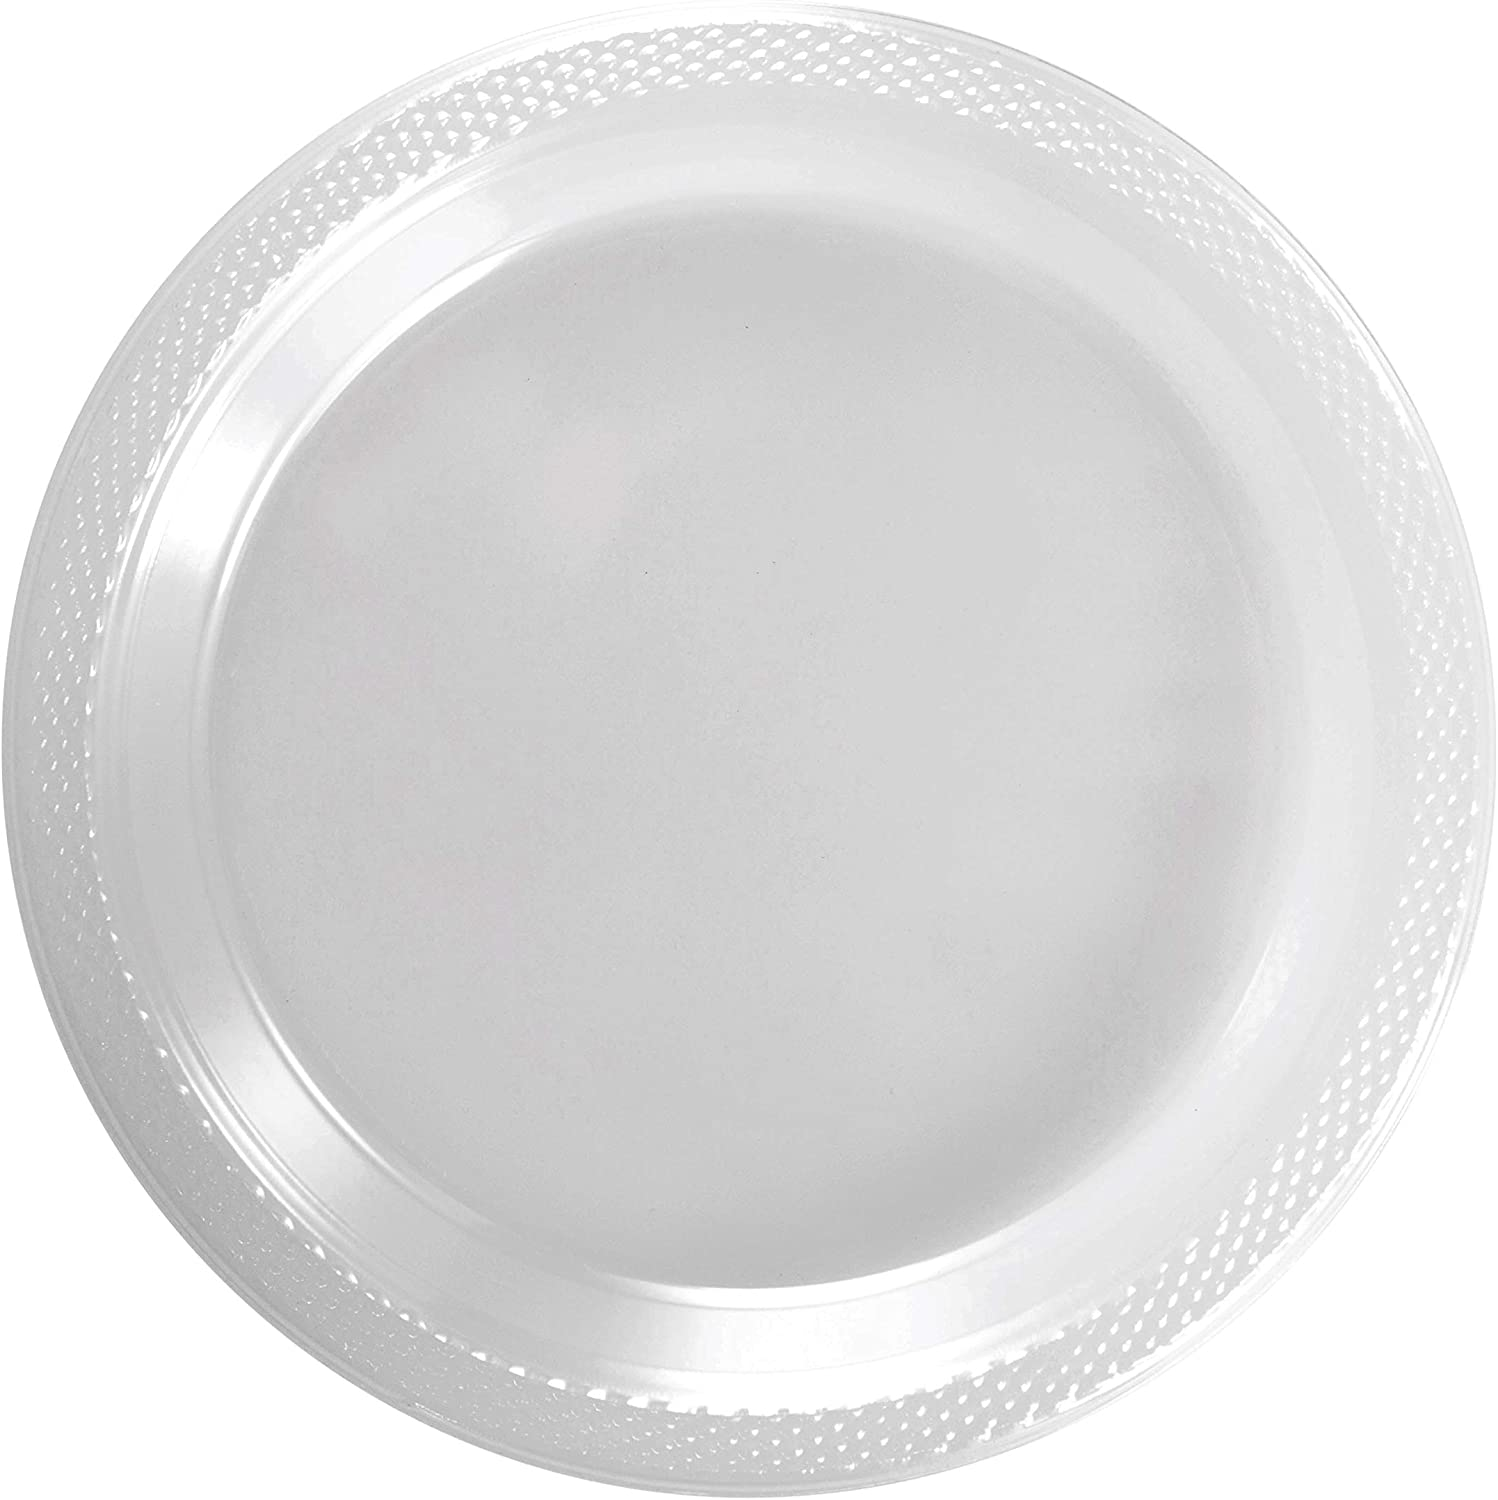 Exquisite 9 Inch. Clear Plastic Plates  Solid color Disposable Plates  50 Count